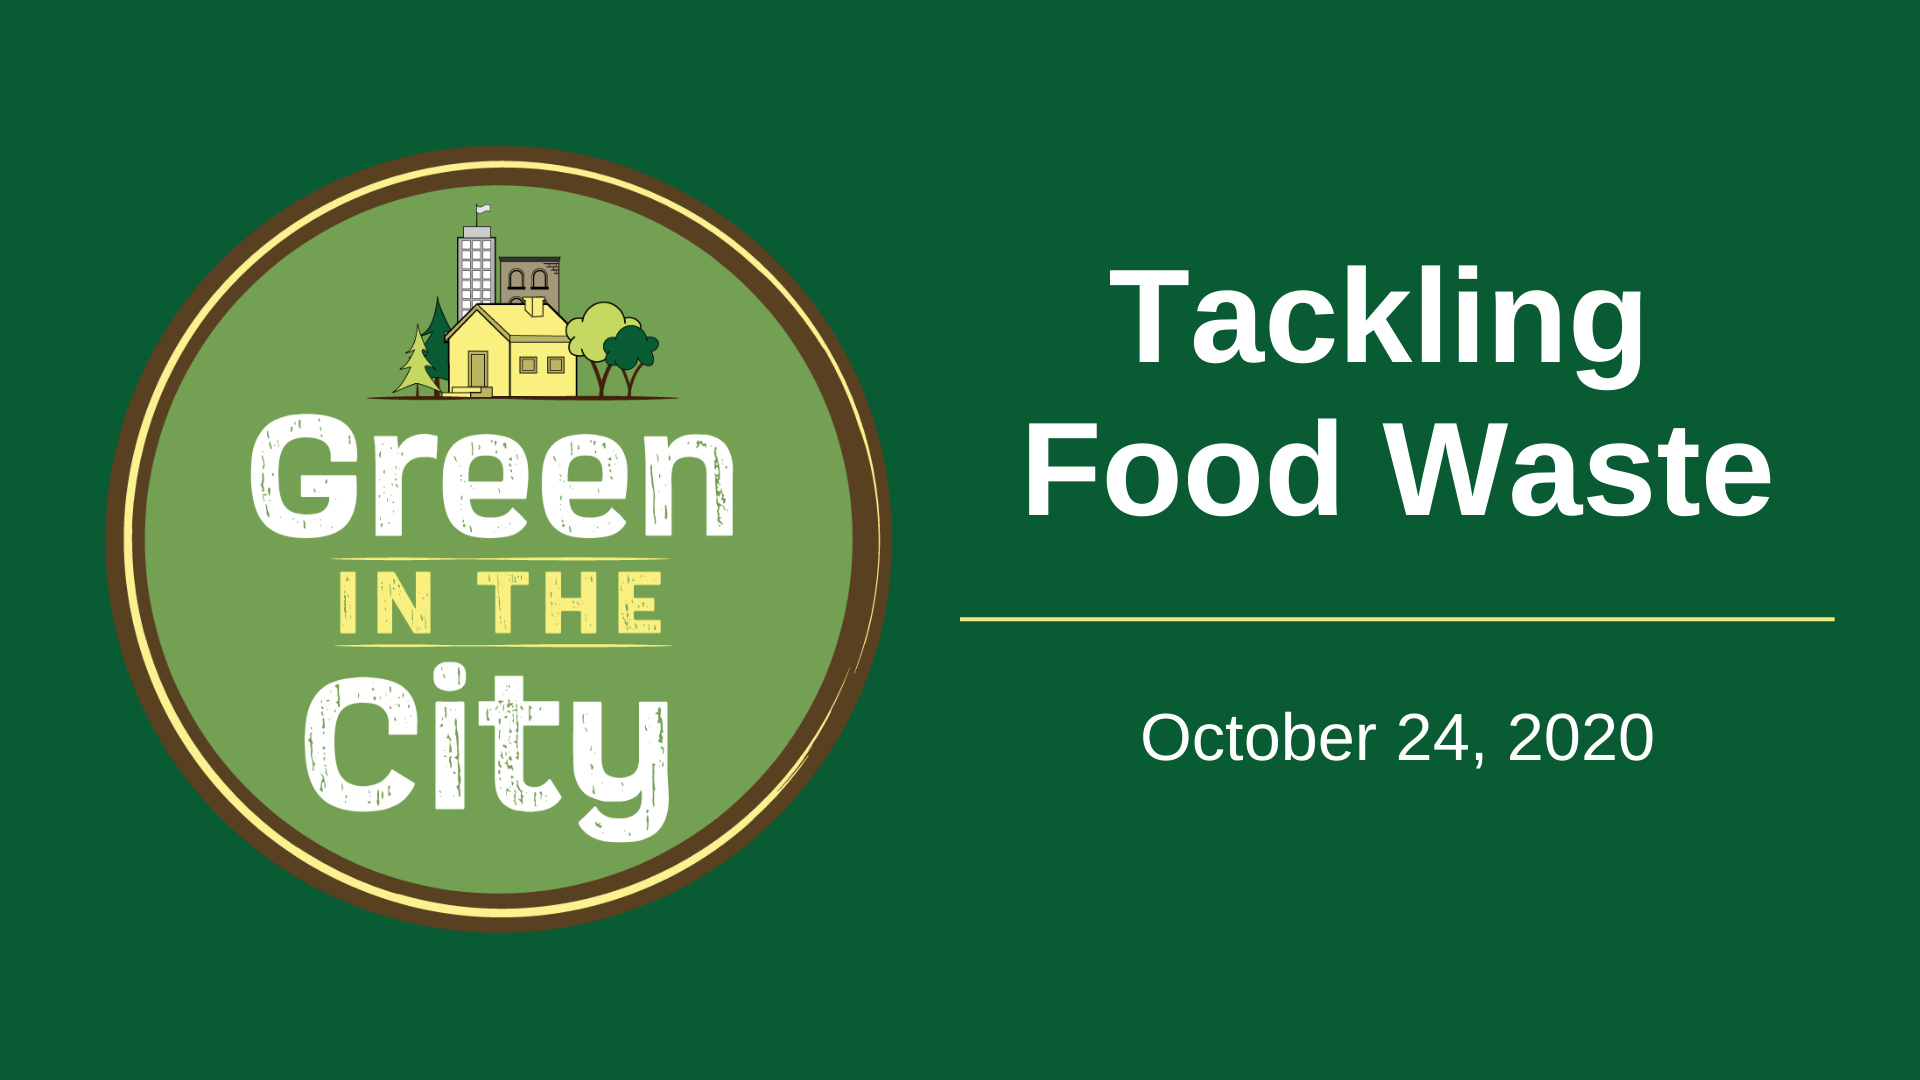 Thumbnail for Tackling Food Waste event recording